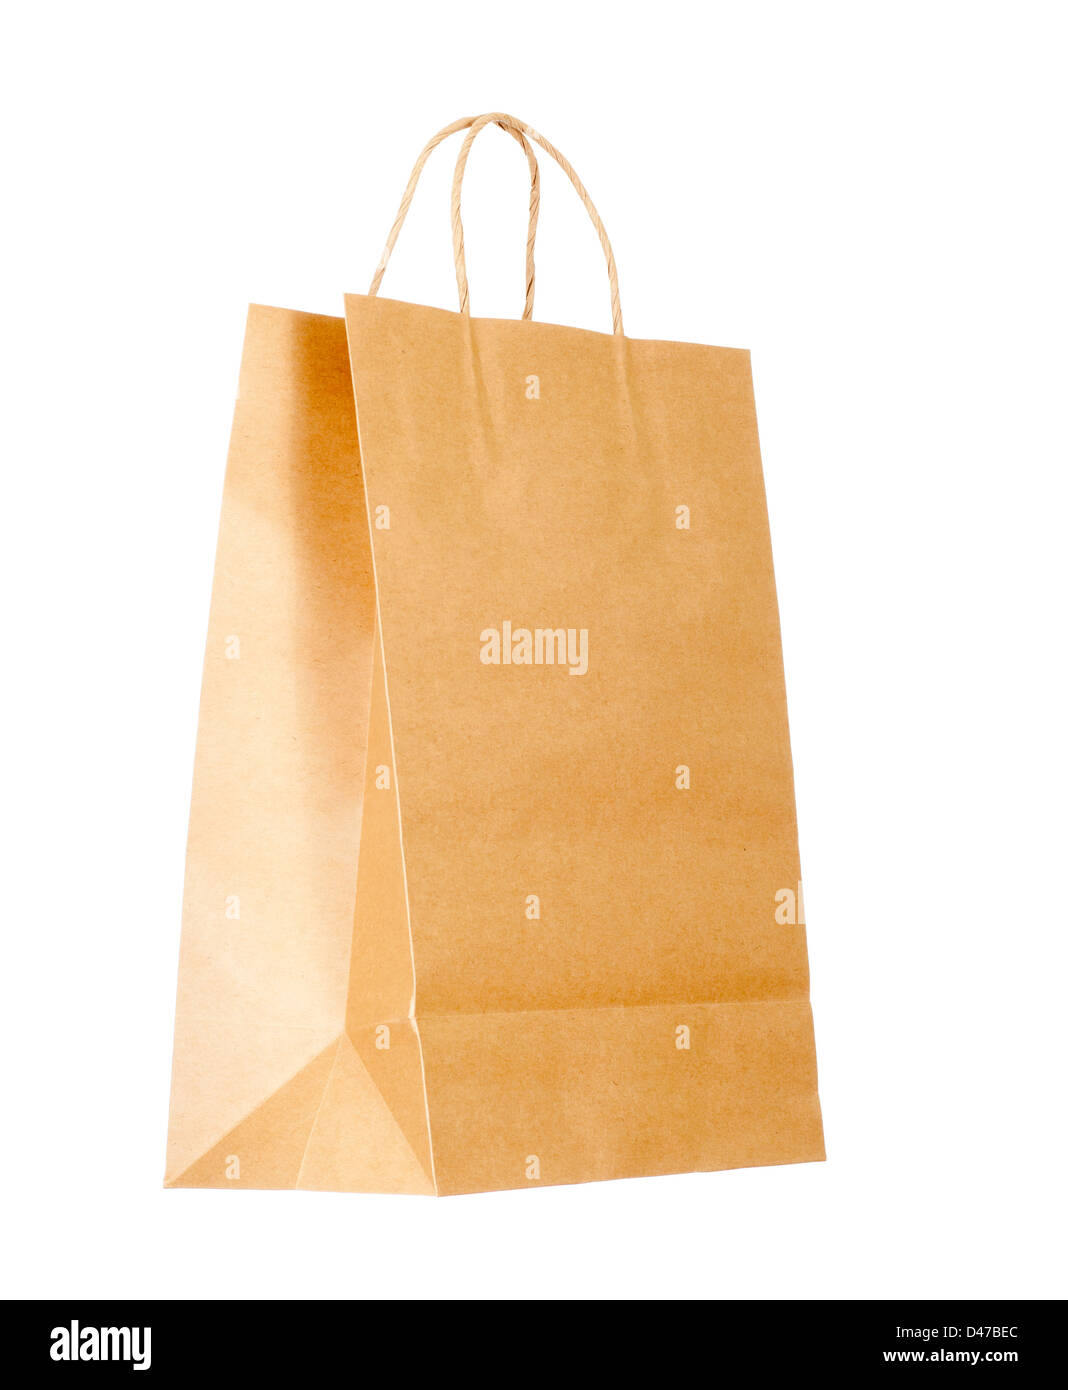 Recyclable paper bag isolated on white background - Stock Image